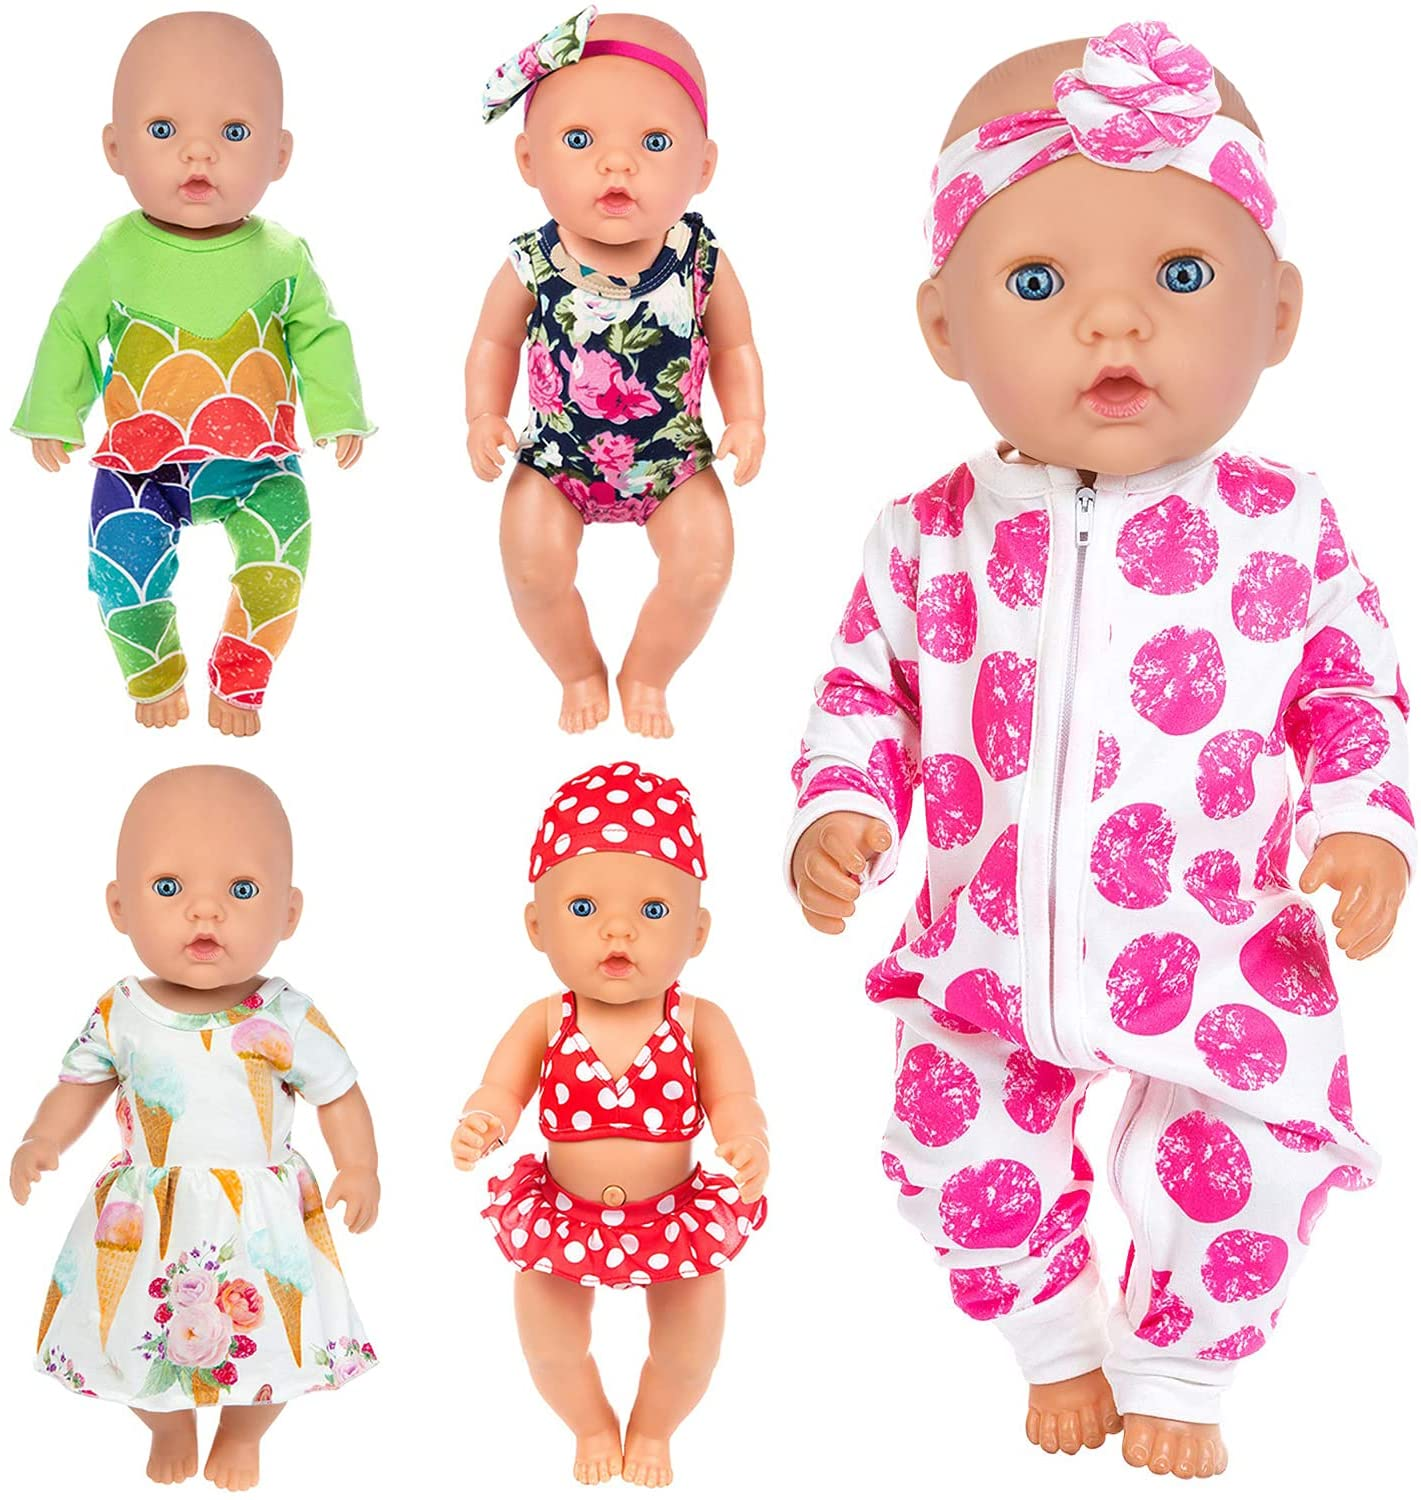 ZITA ELEMENT 10 Items 14-16 Inch Clothes Baby Jumps Dresses Doll Direct Import store